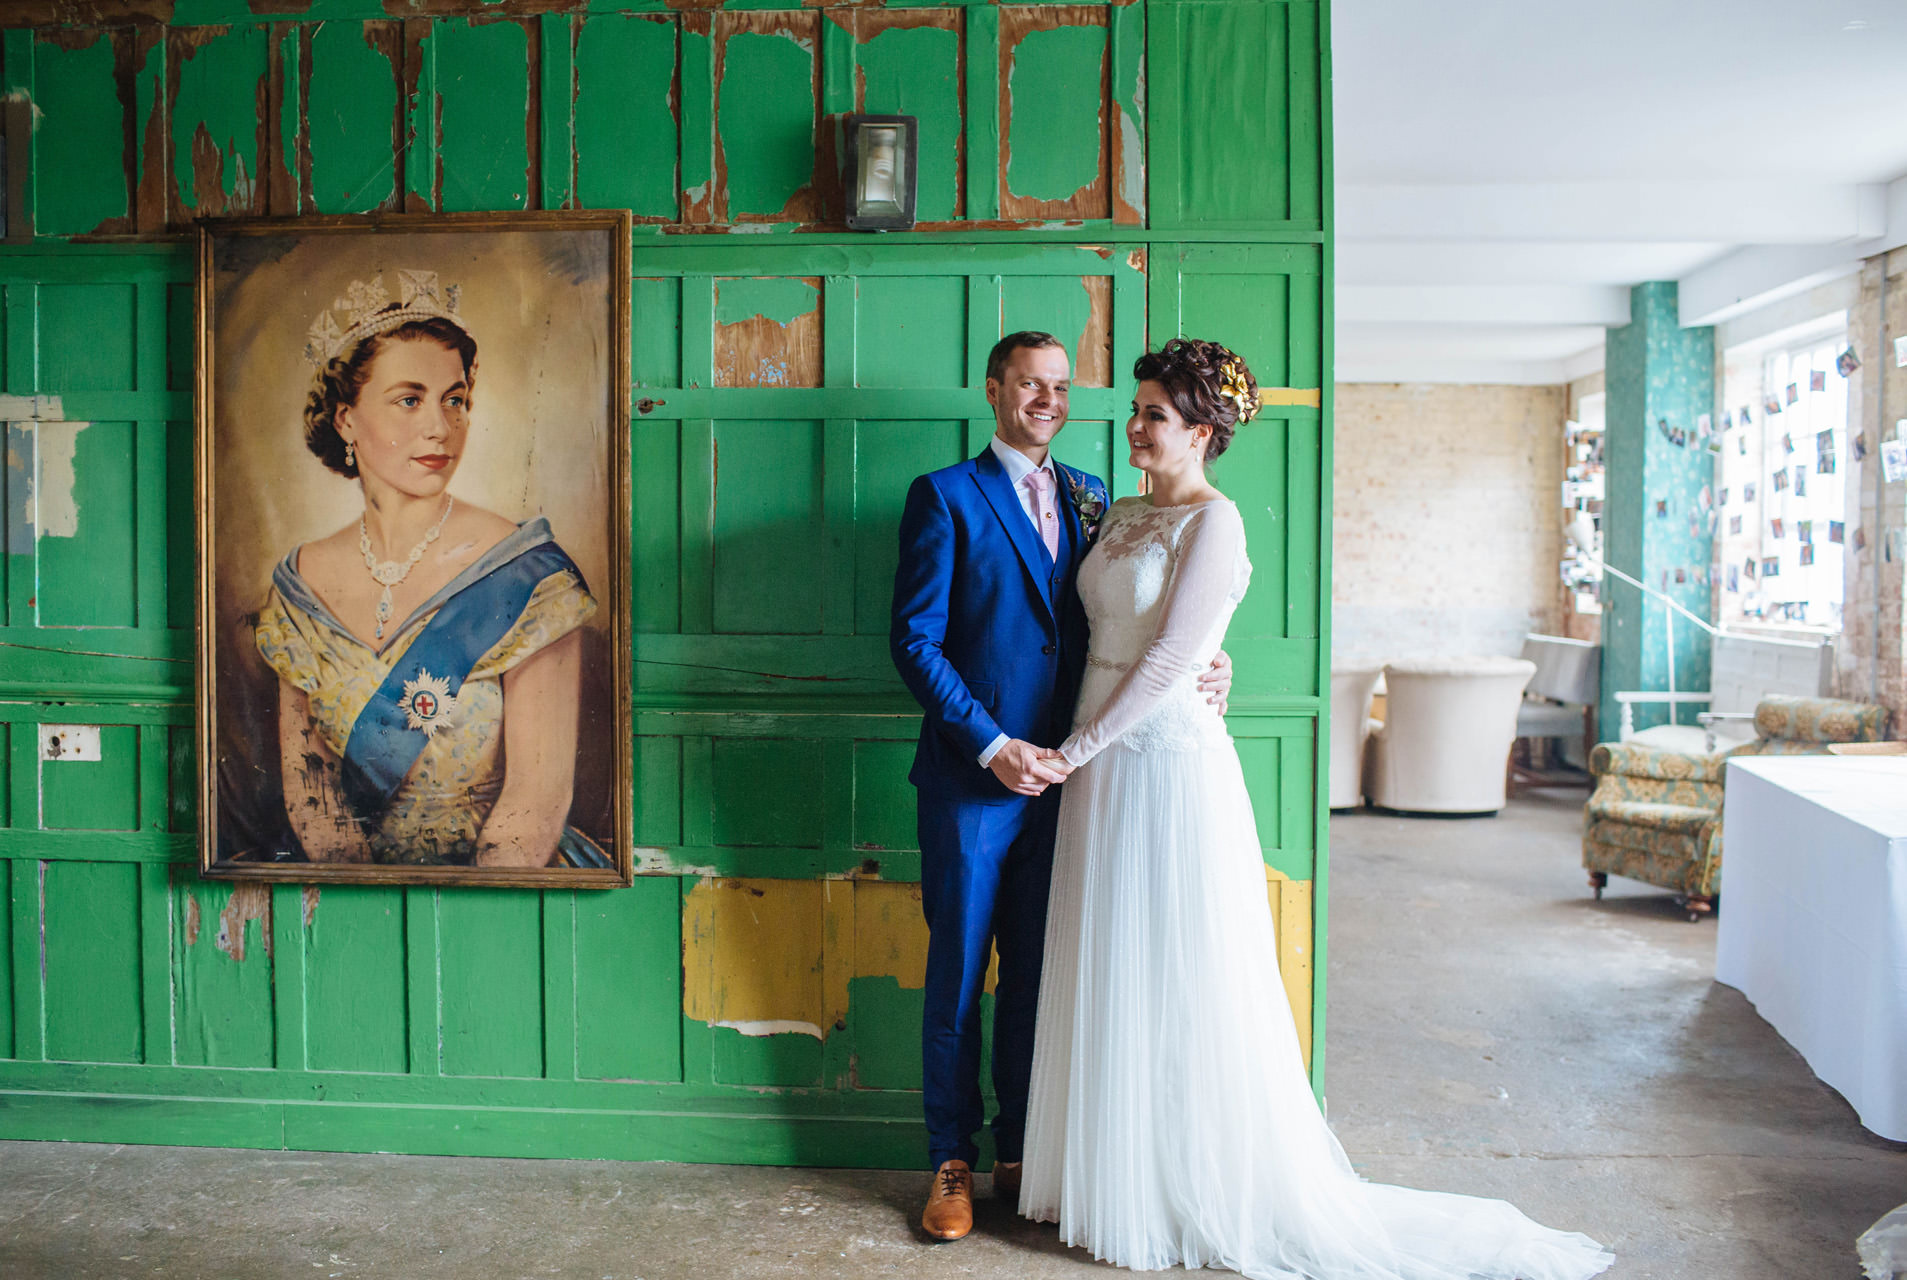 bride and groom holding hands in front of green wooden wall with a queen painting